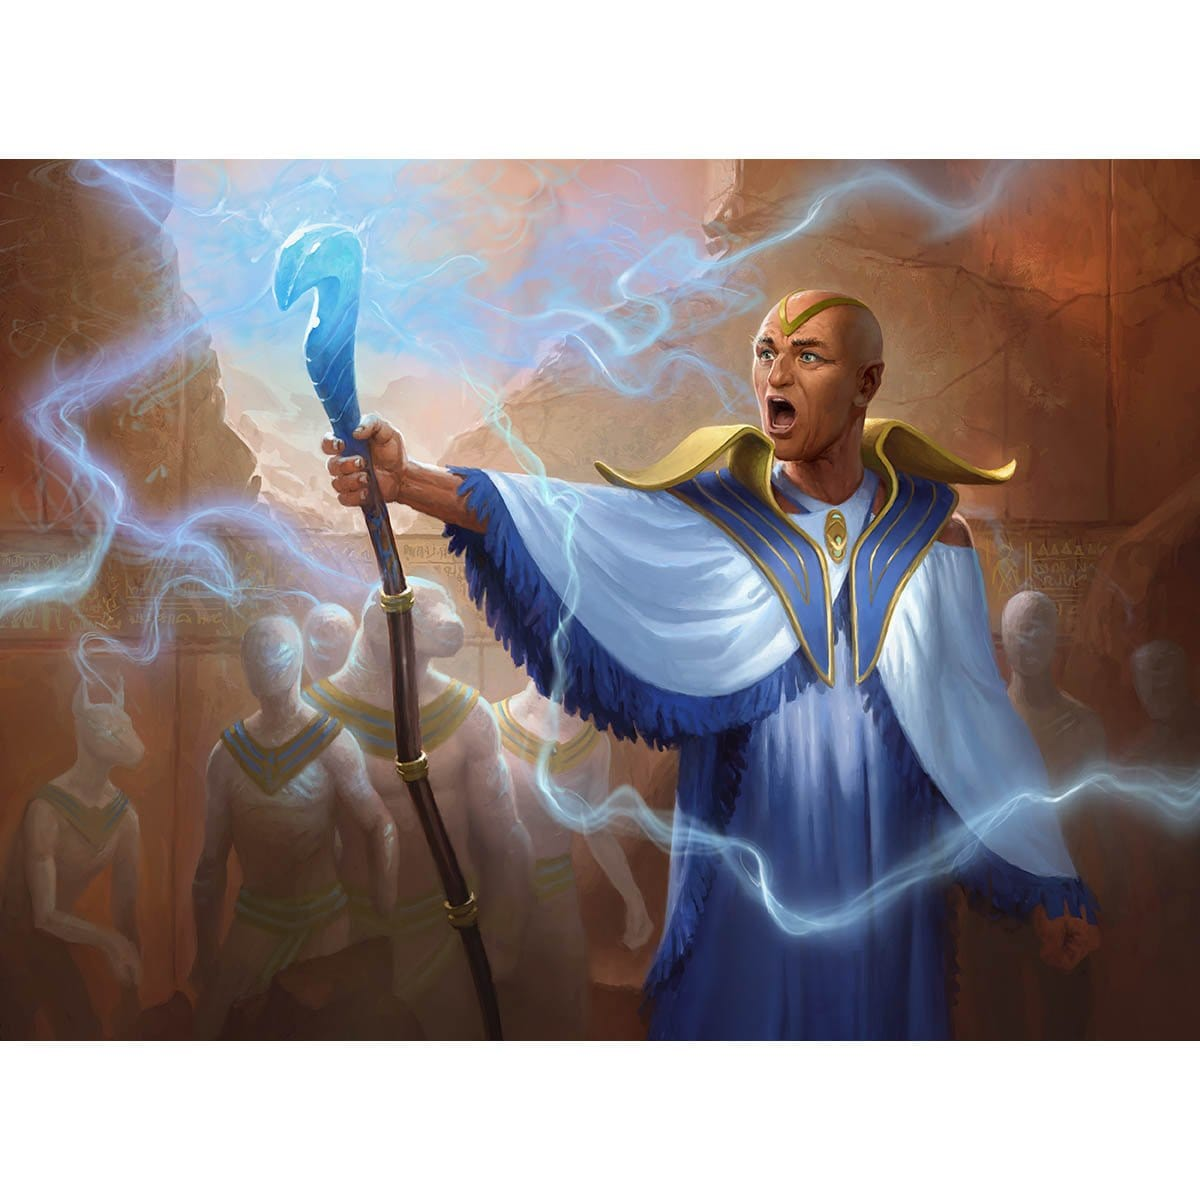 Vizier of the Anointed Print - Print - Original Magic Art - Accessories for Magic the Gathering and other card games